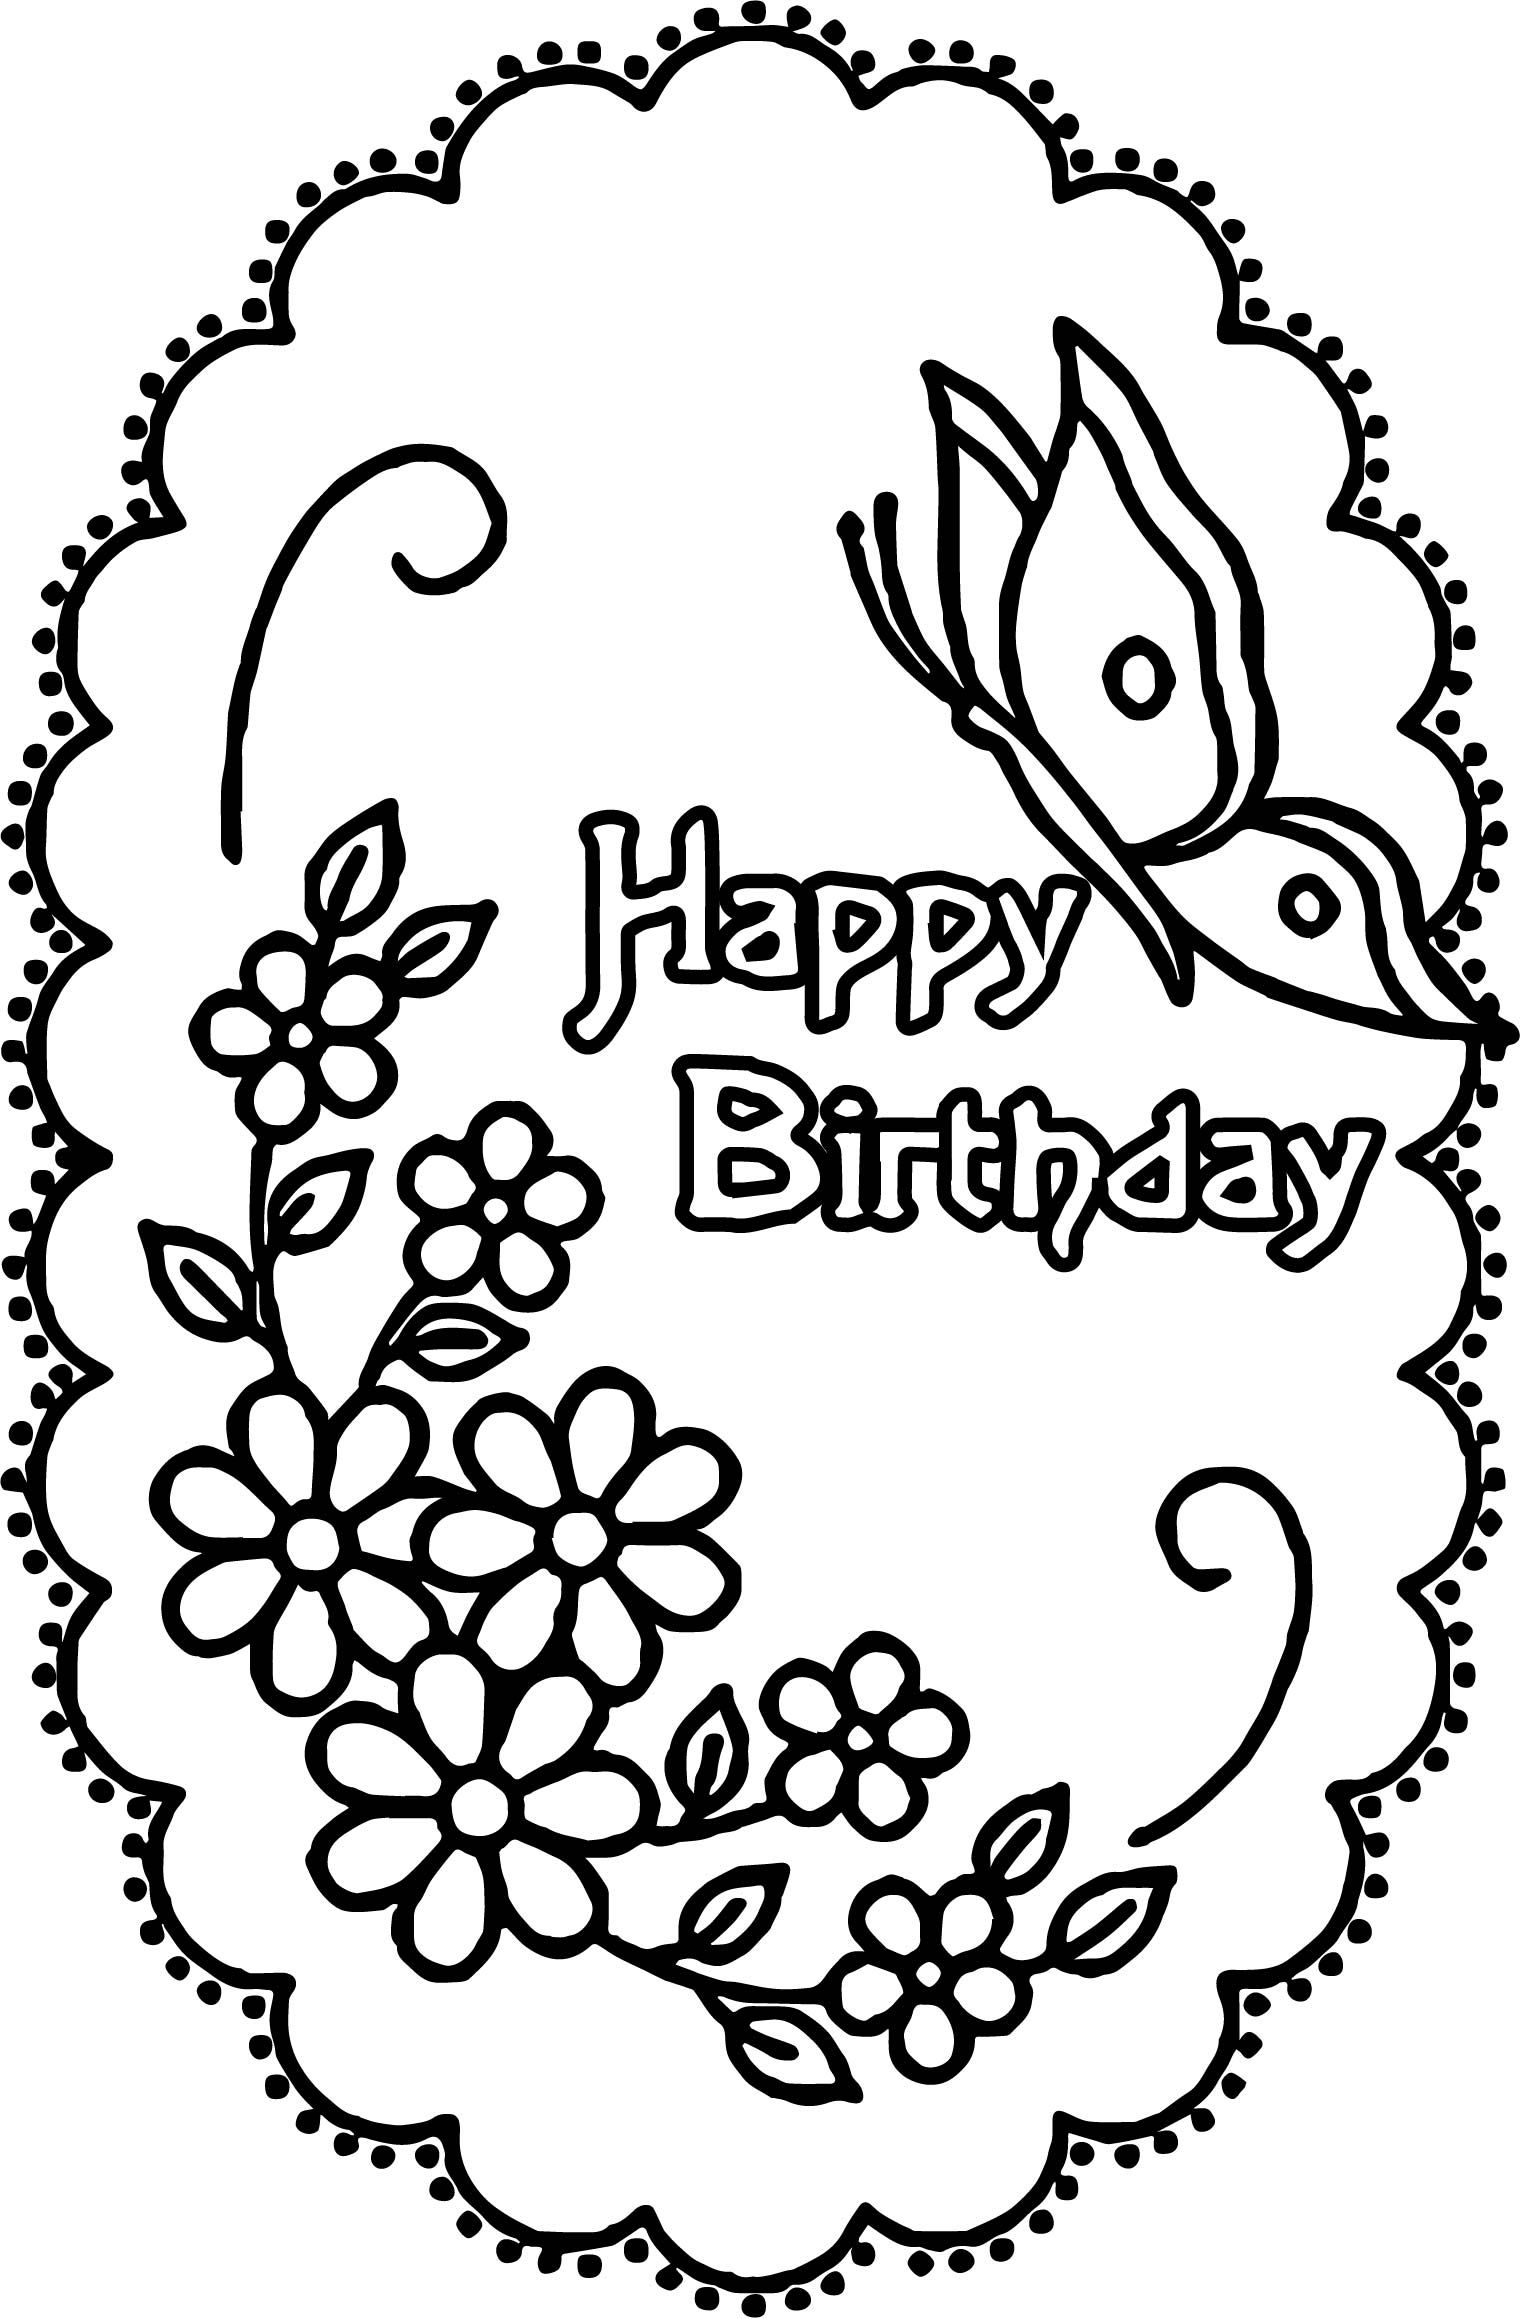 Happy Birthday Coloring Pages For Nana